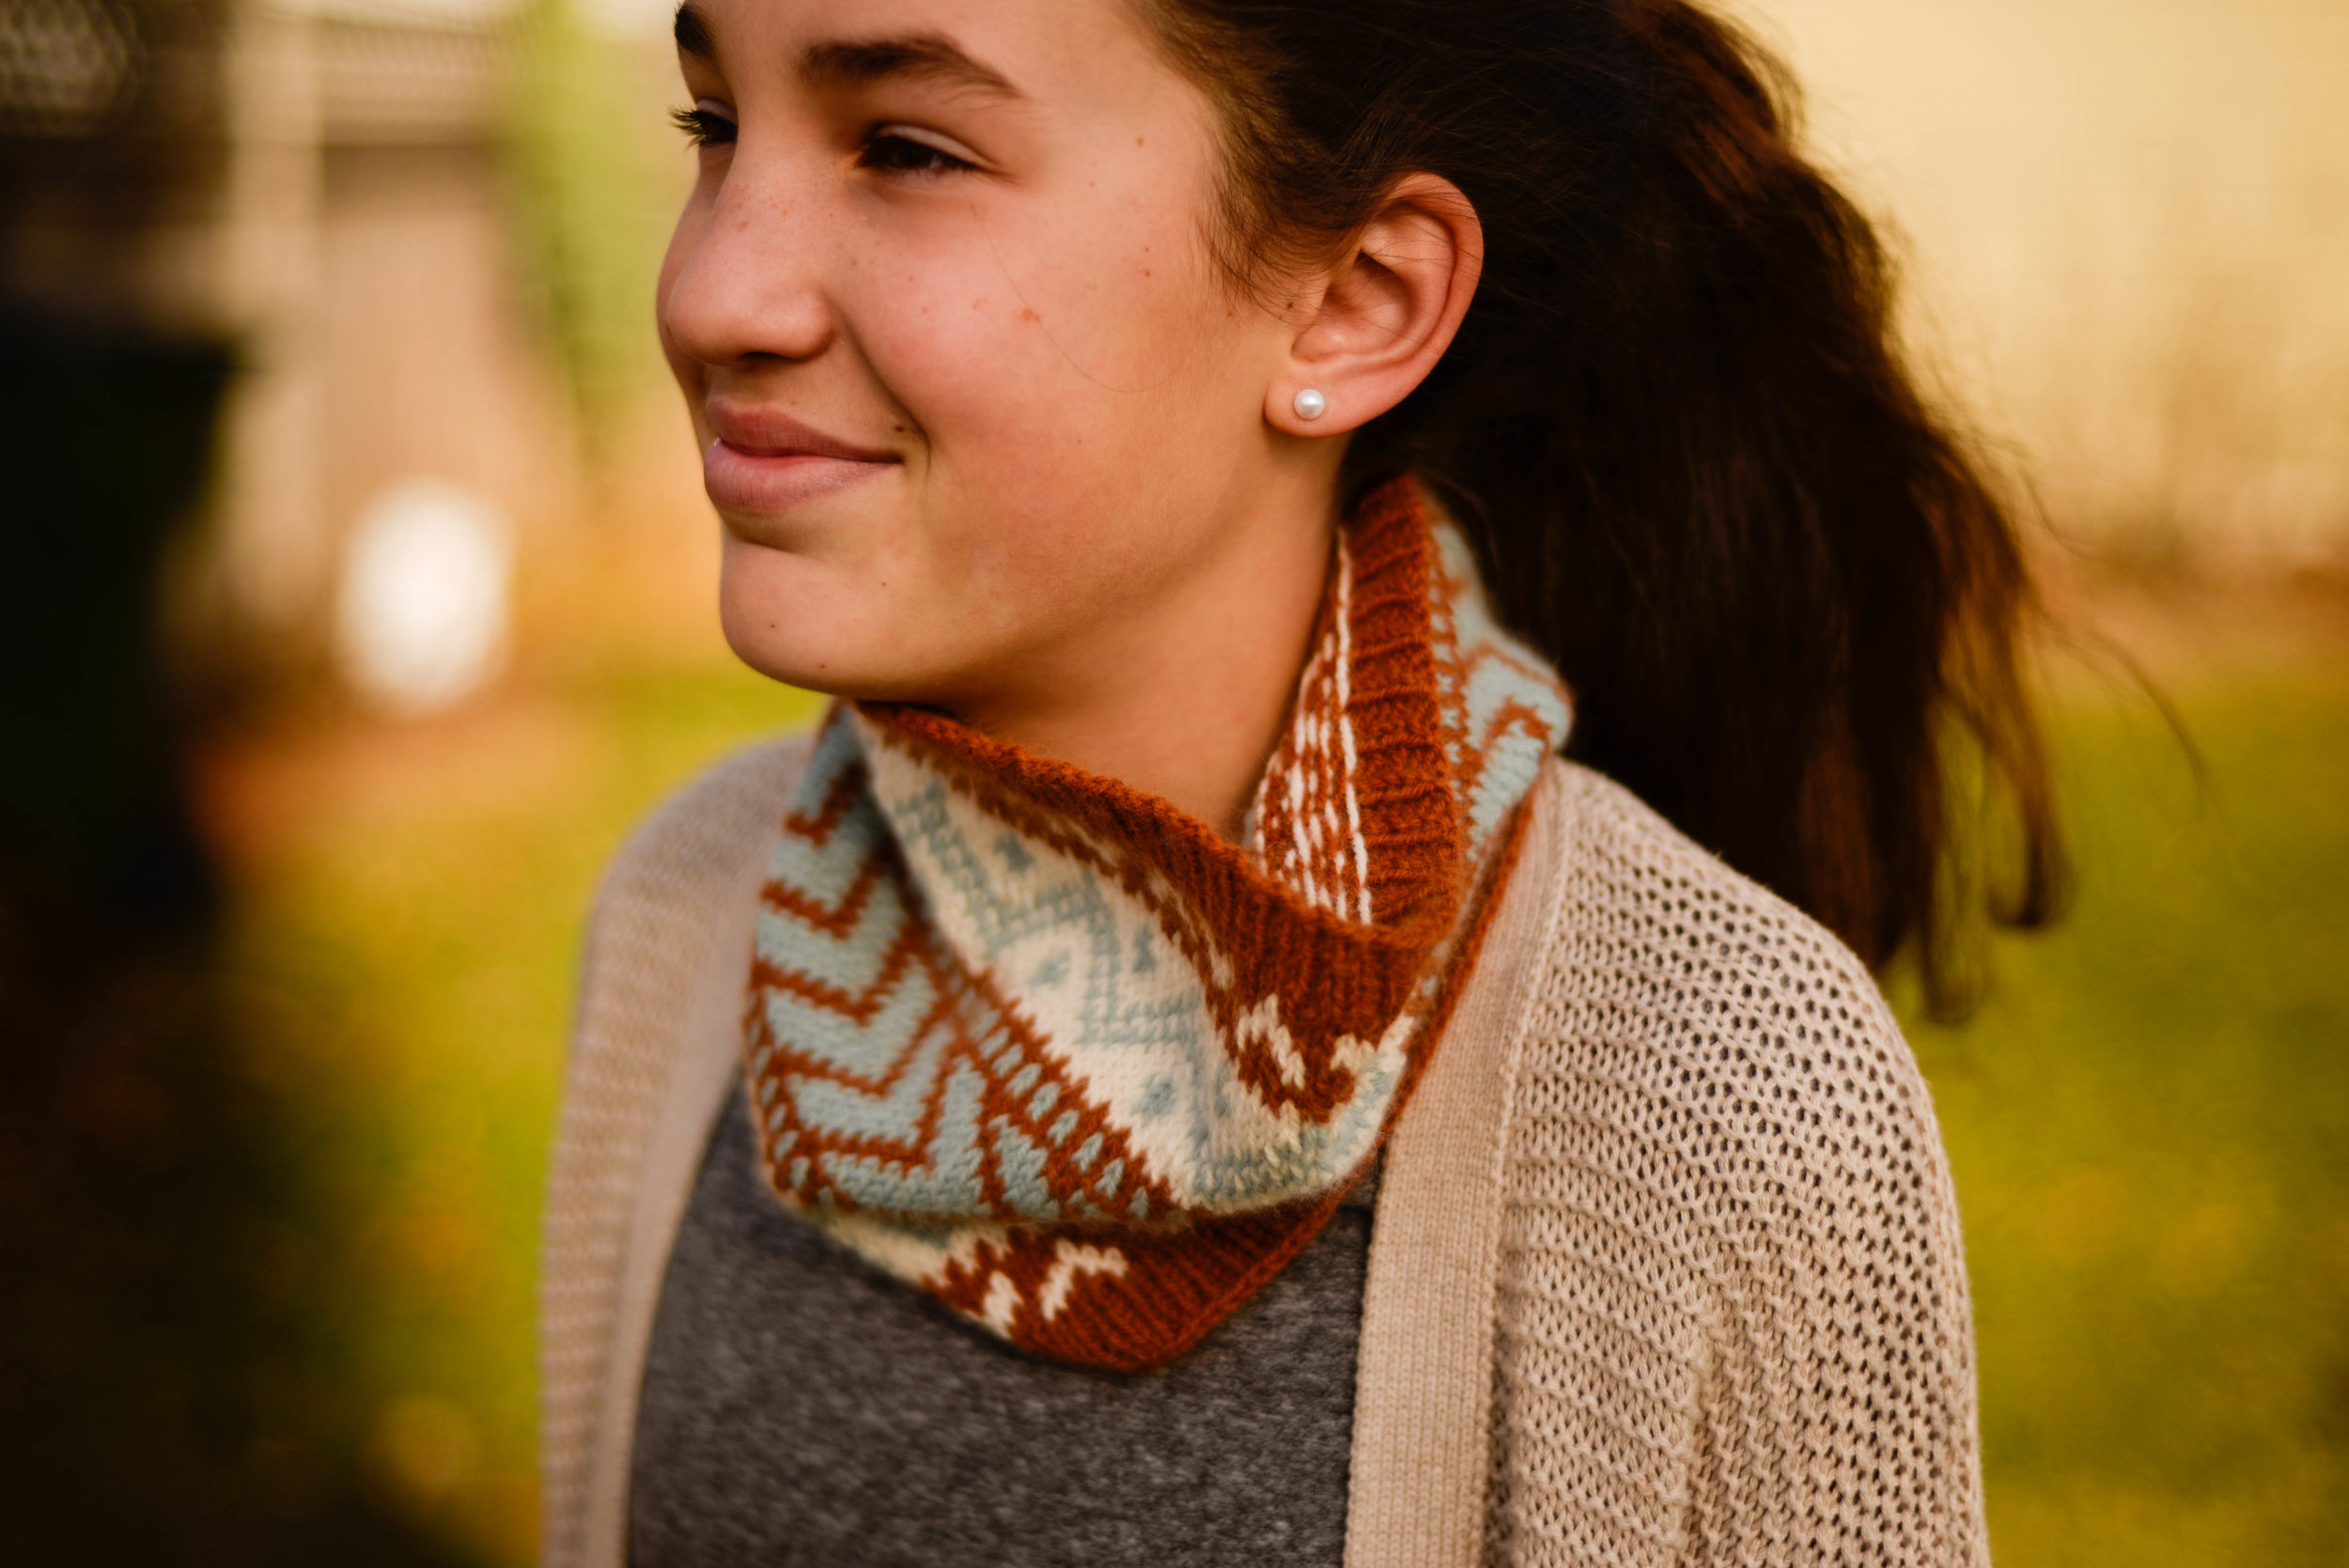 Stravaigin, a colorwork cowl that is simple and quick to knit. Click on the image to purchase the pattern.